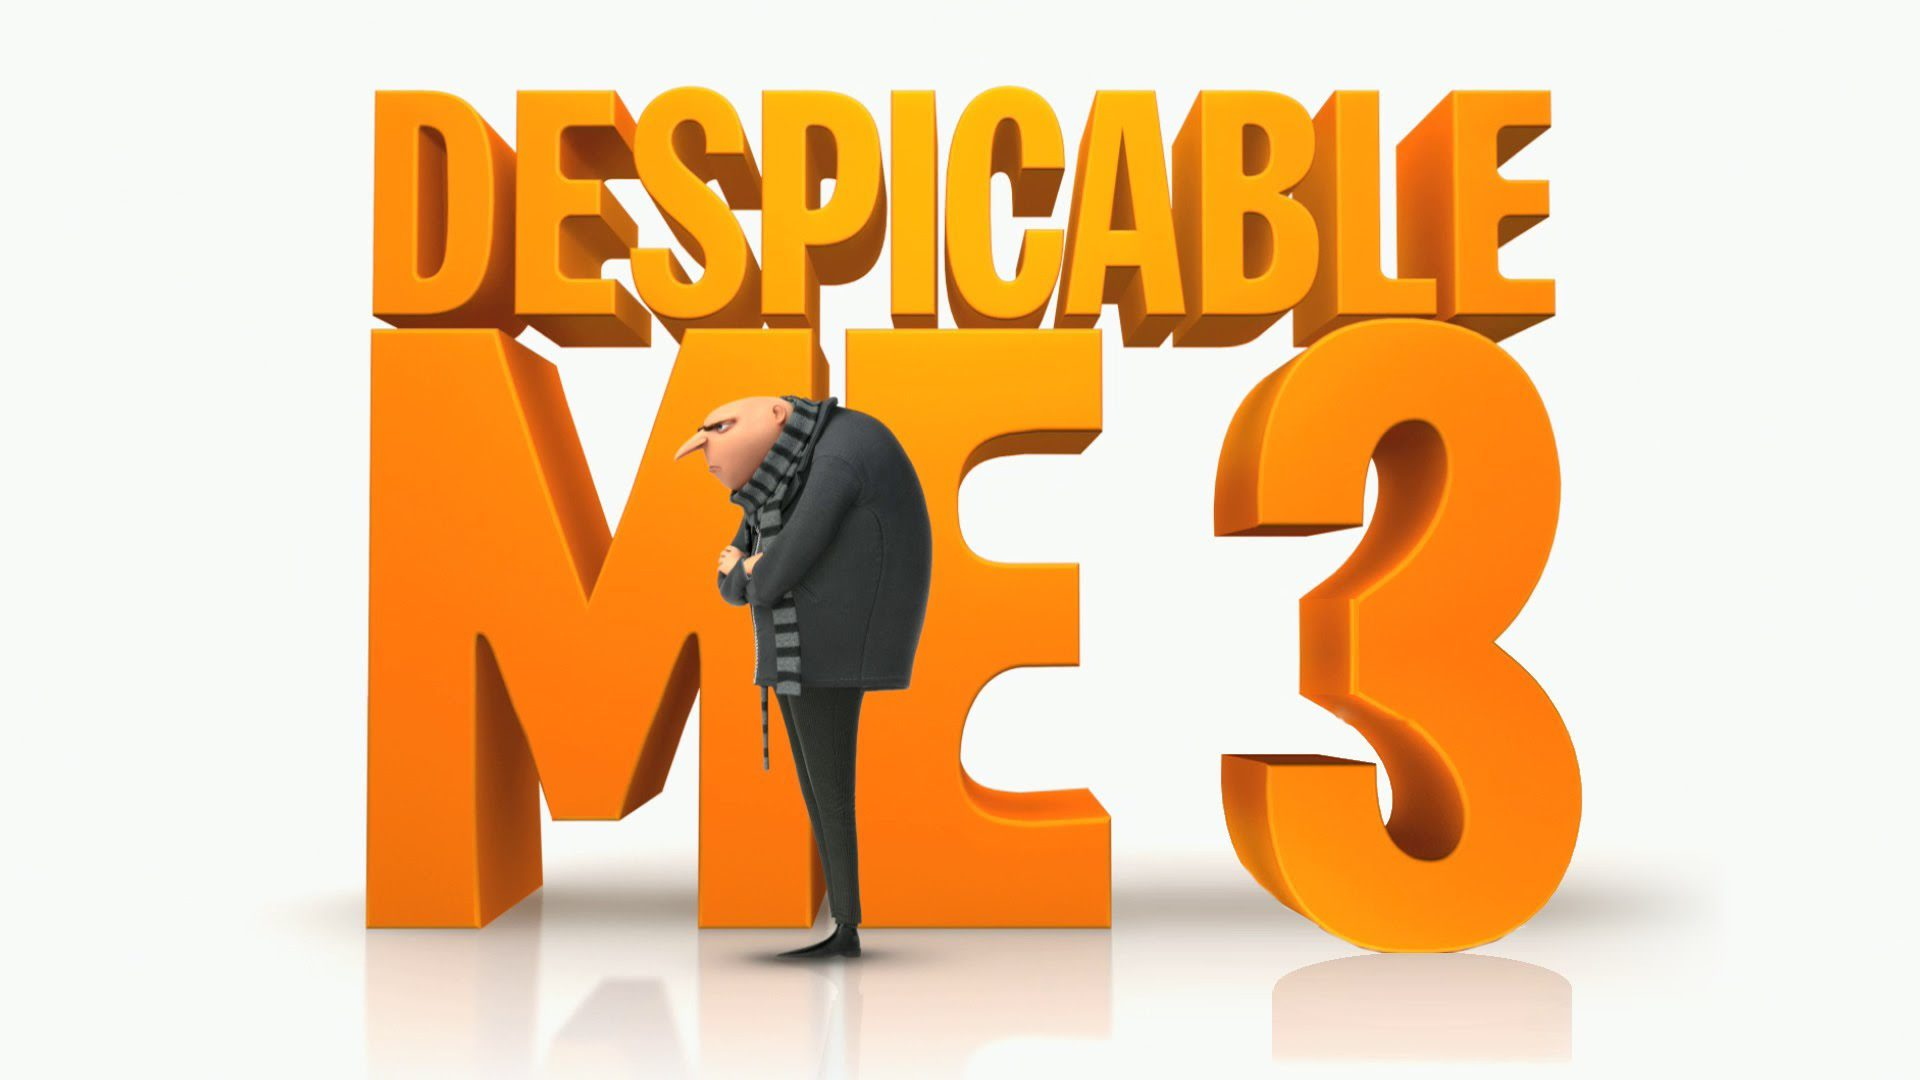 Despicable Me 3 Special Edition Blu-Ray Coming in Time for the Holidays